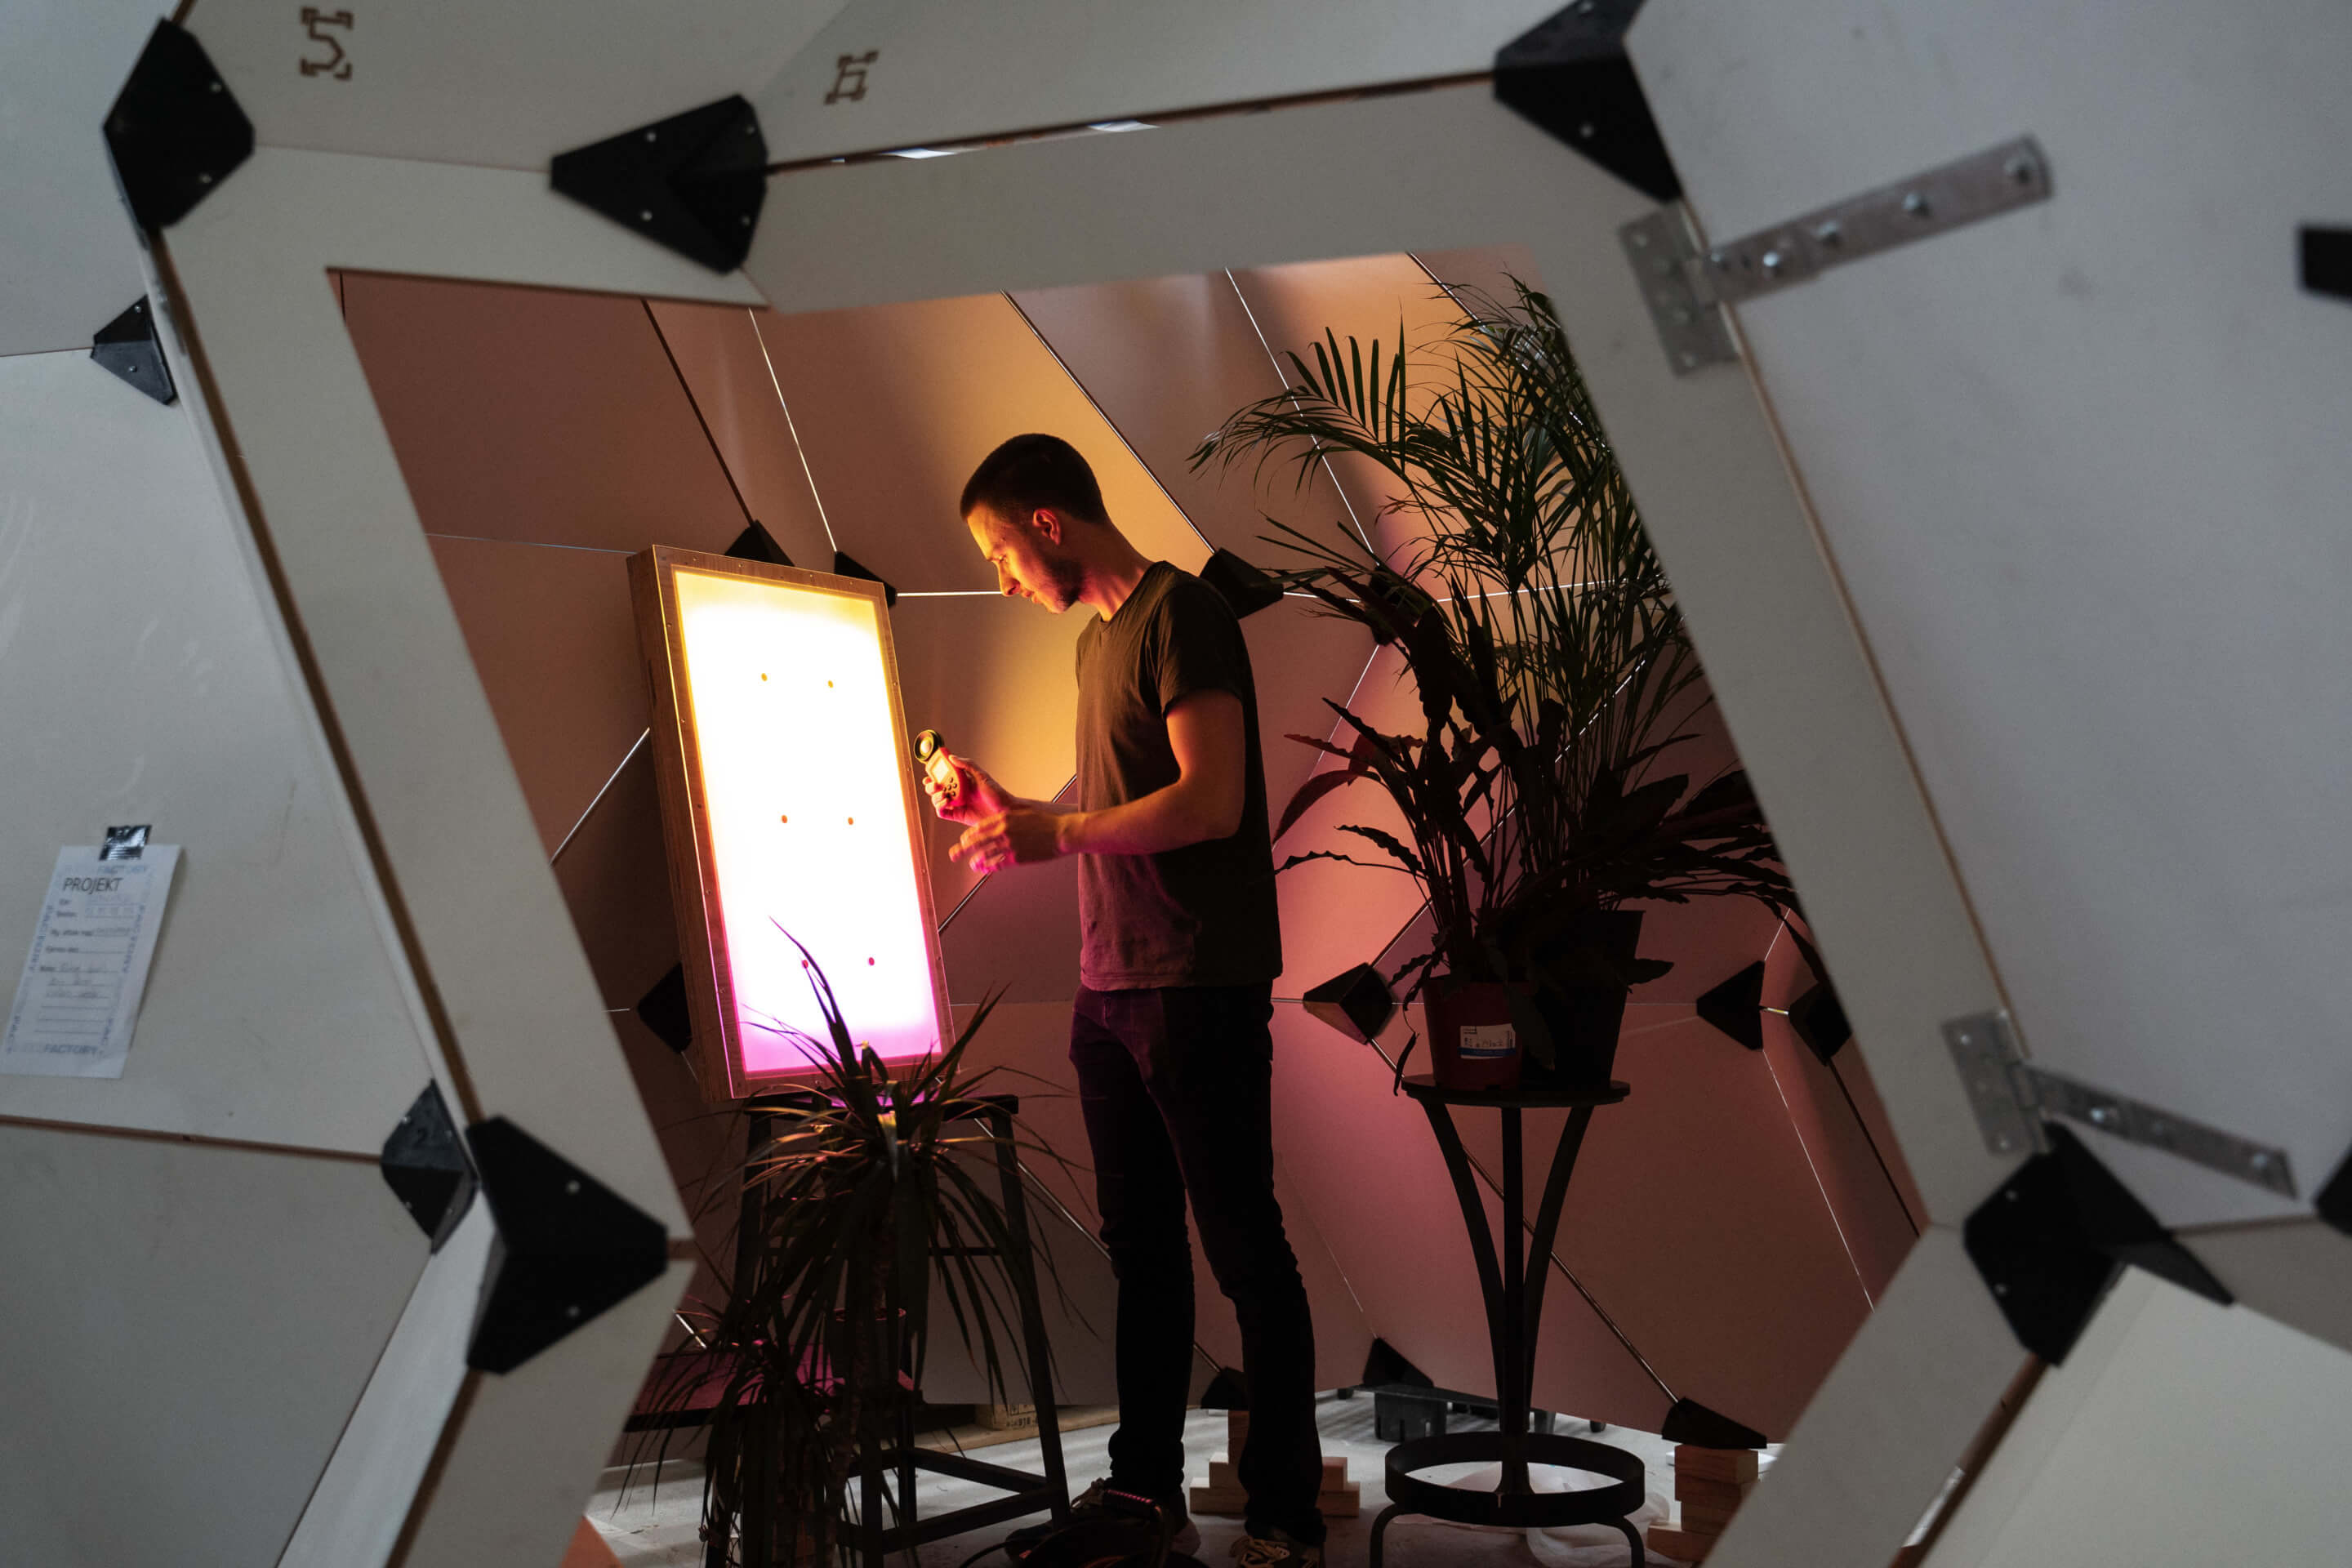 Testing a light panel that ranges from yellow to purple